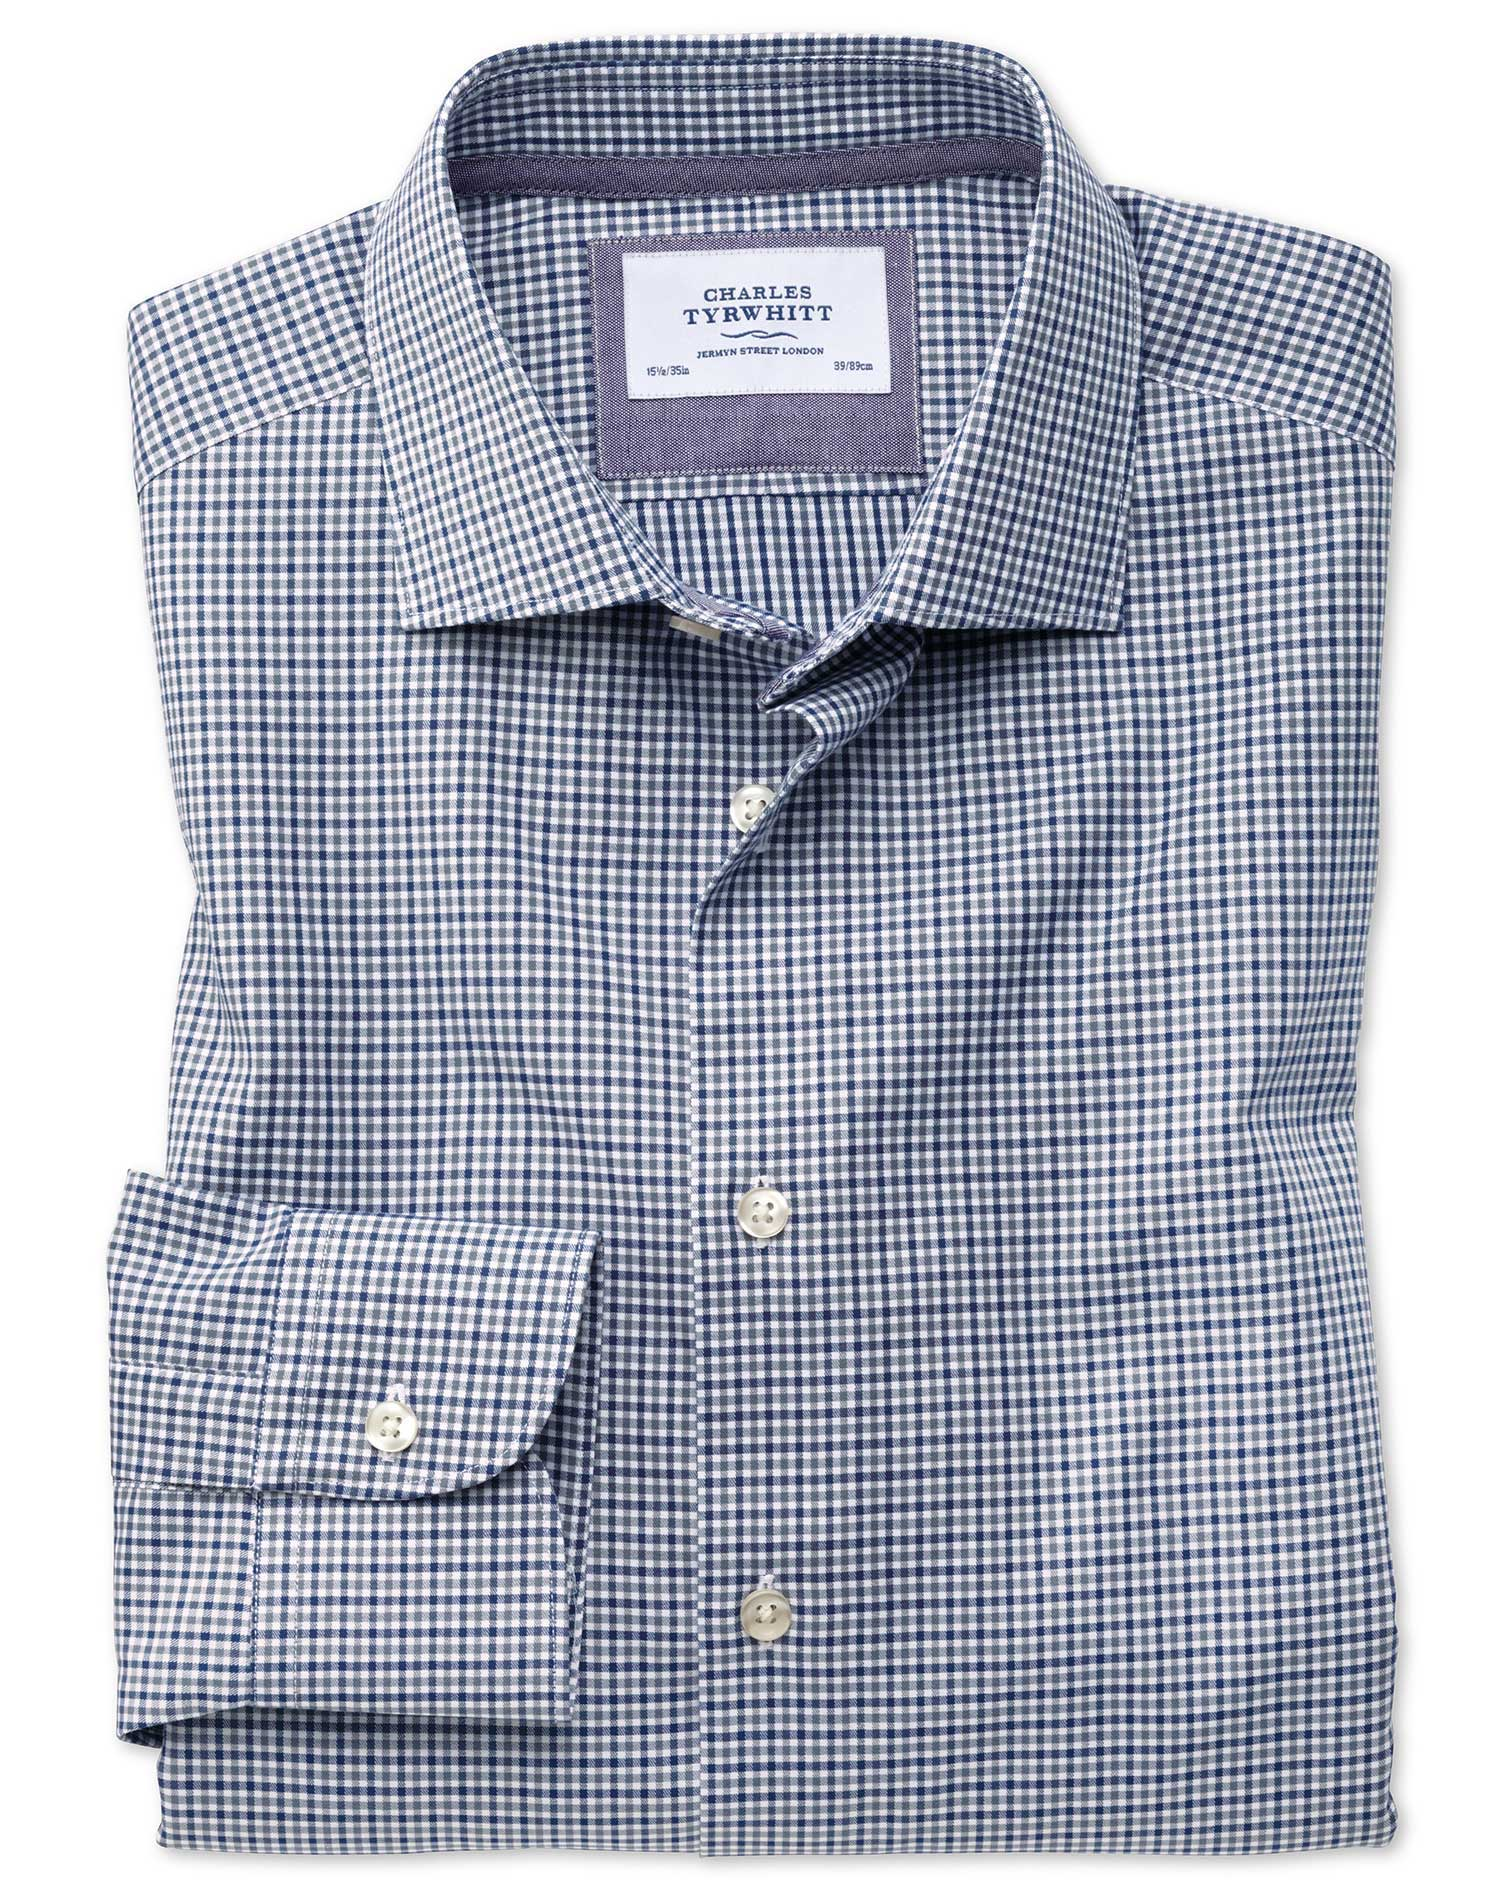 Slim Fit Semi-Cutaway Business Casual Gingham Navy and Grey Cotton Formal Shirt Single Cuff Size 17/